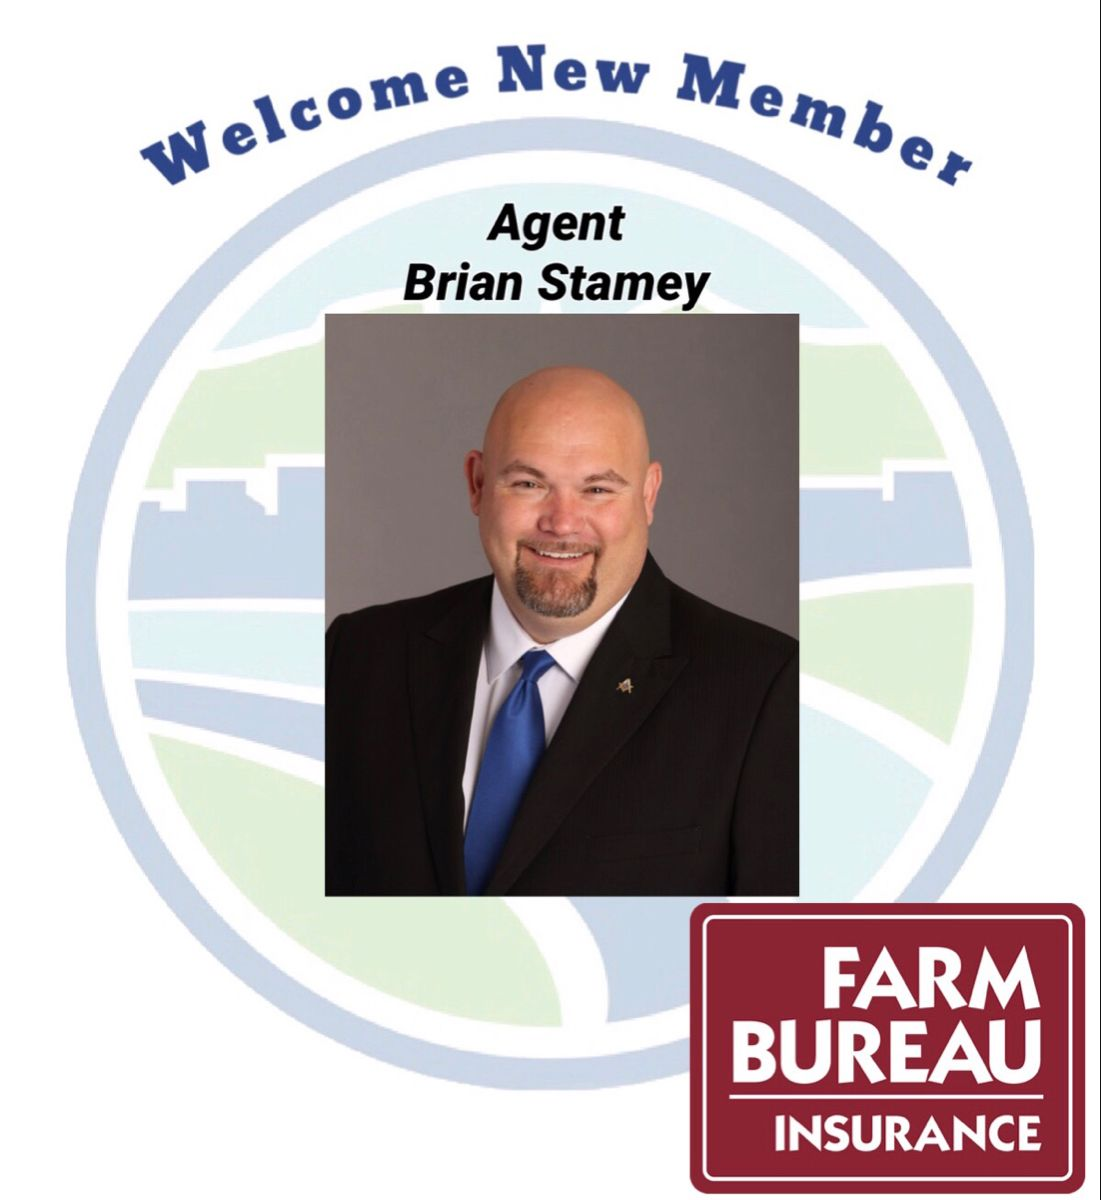 Please Welcome Our New Member Farm Bureau Agent Brian Stamey In